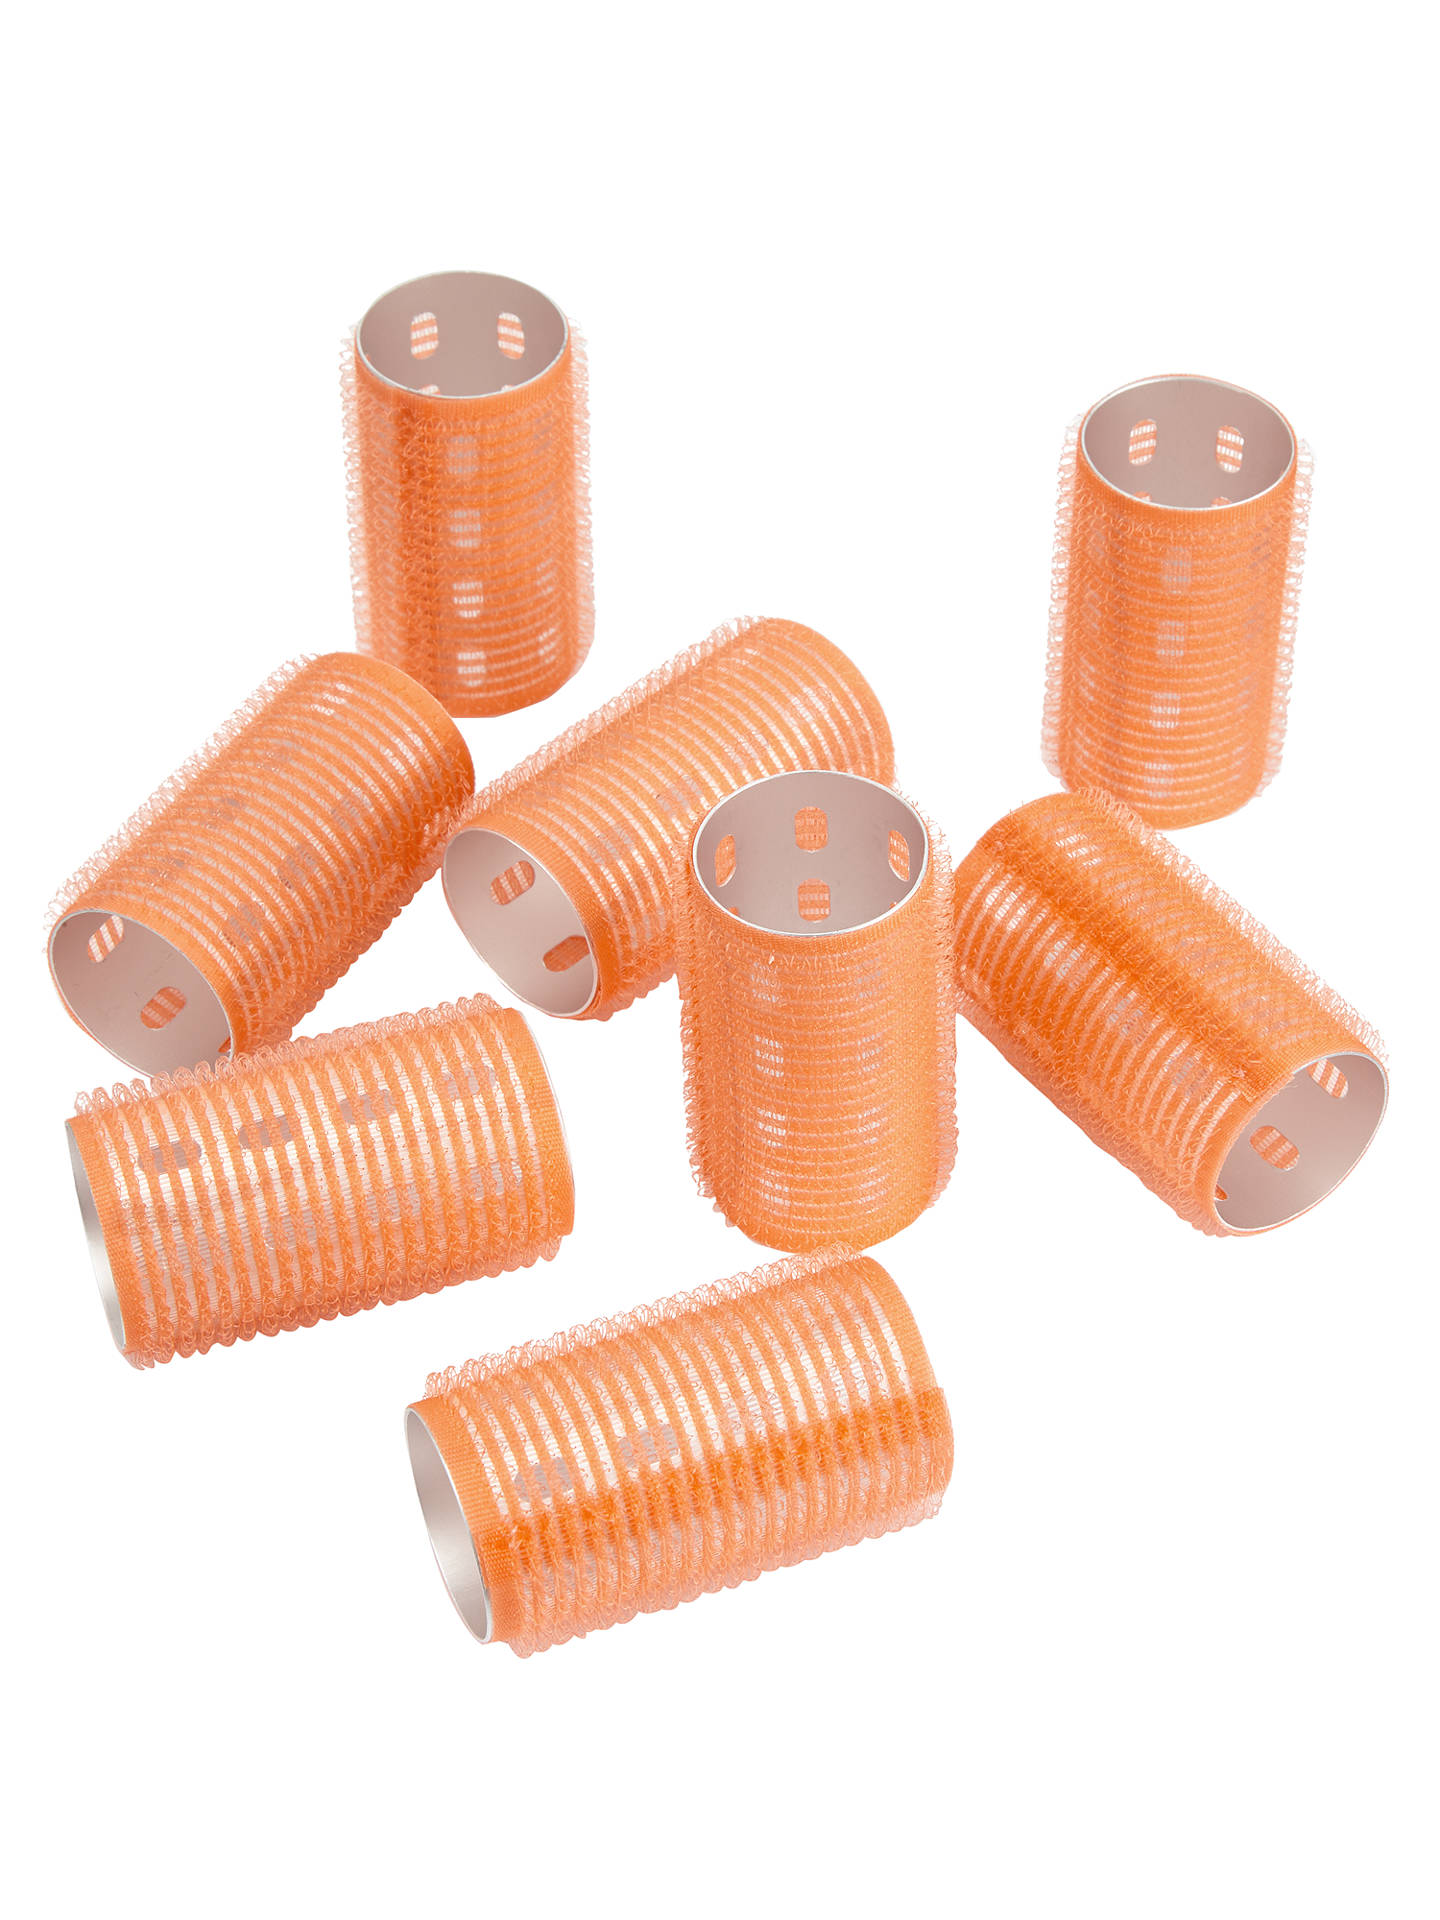 Medium Rip Tape Thermal Hair Rollers, 8 Pack at John Lewis